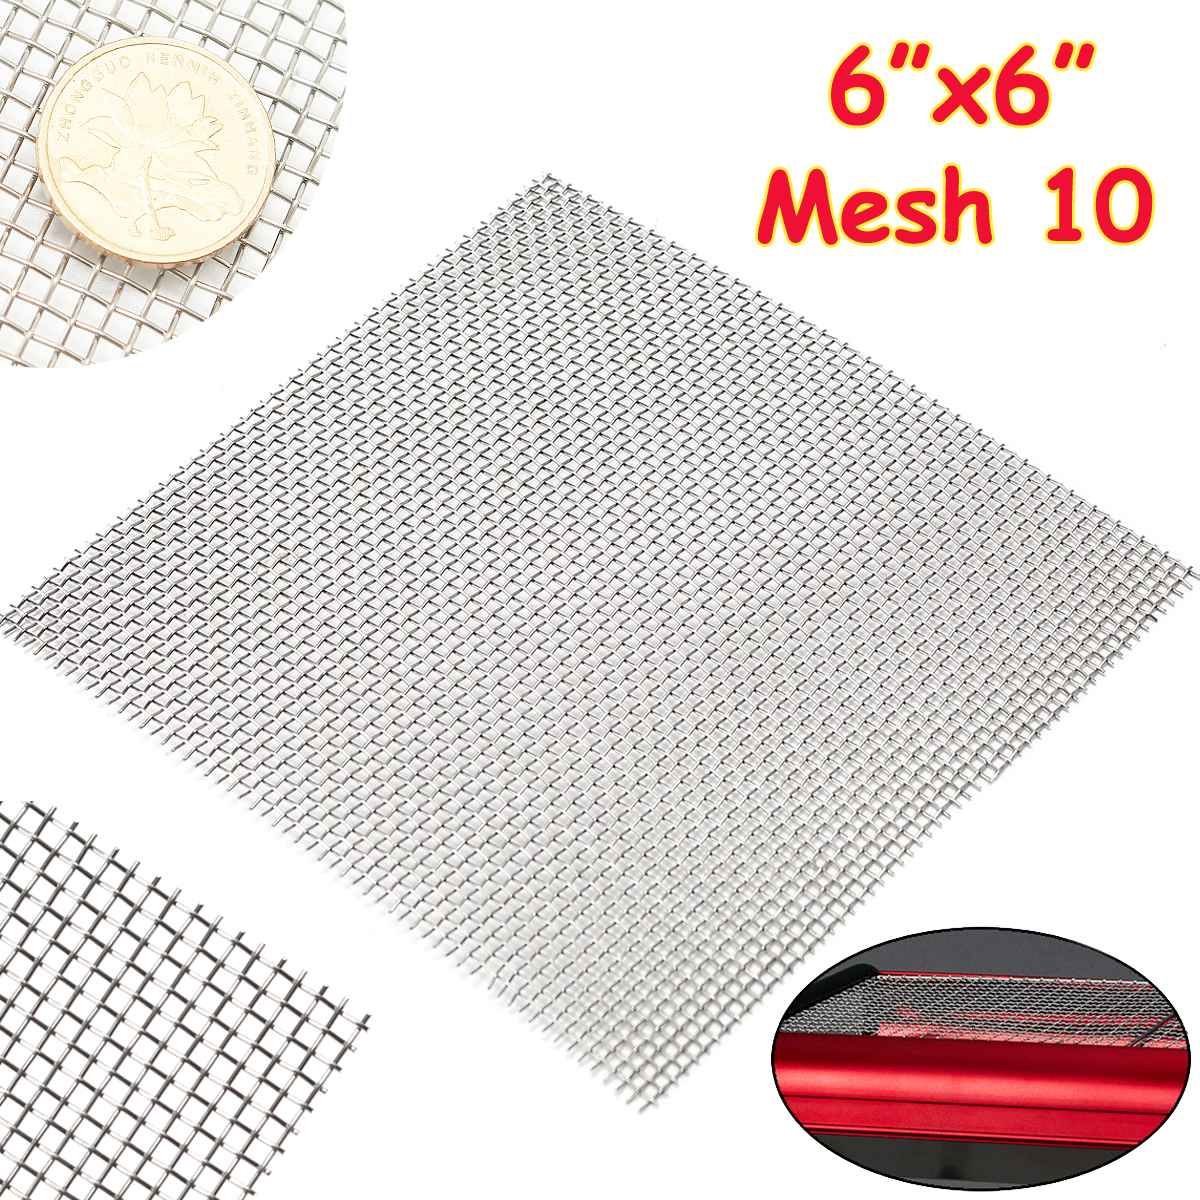 1PC 15x15cm 10 Mesh Woven Wire Cloth Screen Filtration 304 Stainless Steel with High Temperature Res